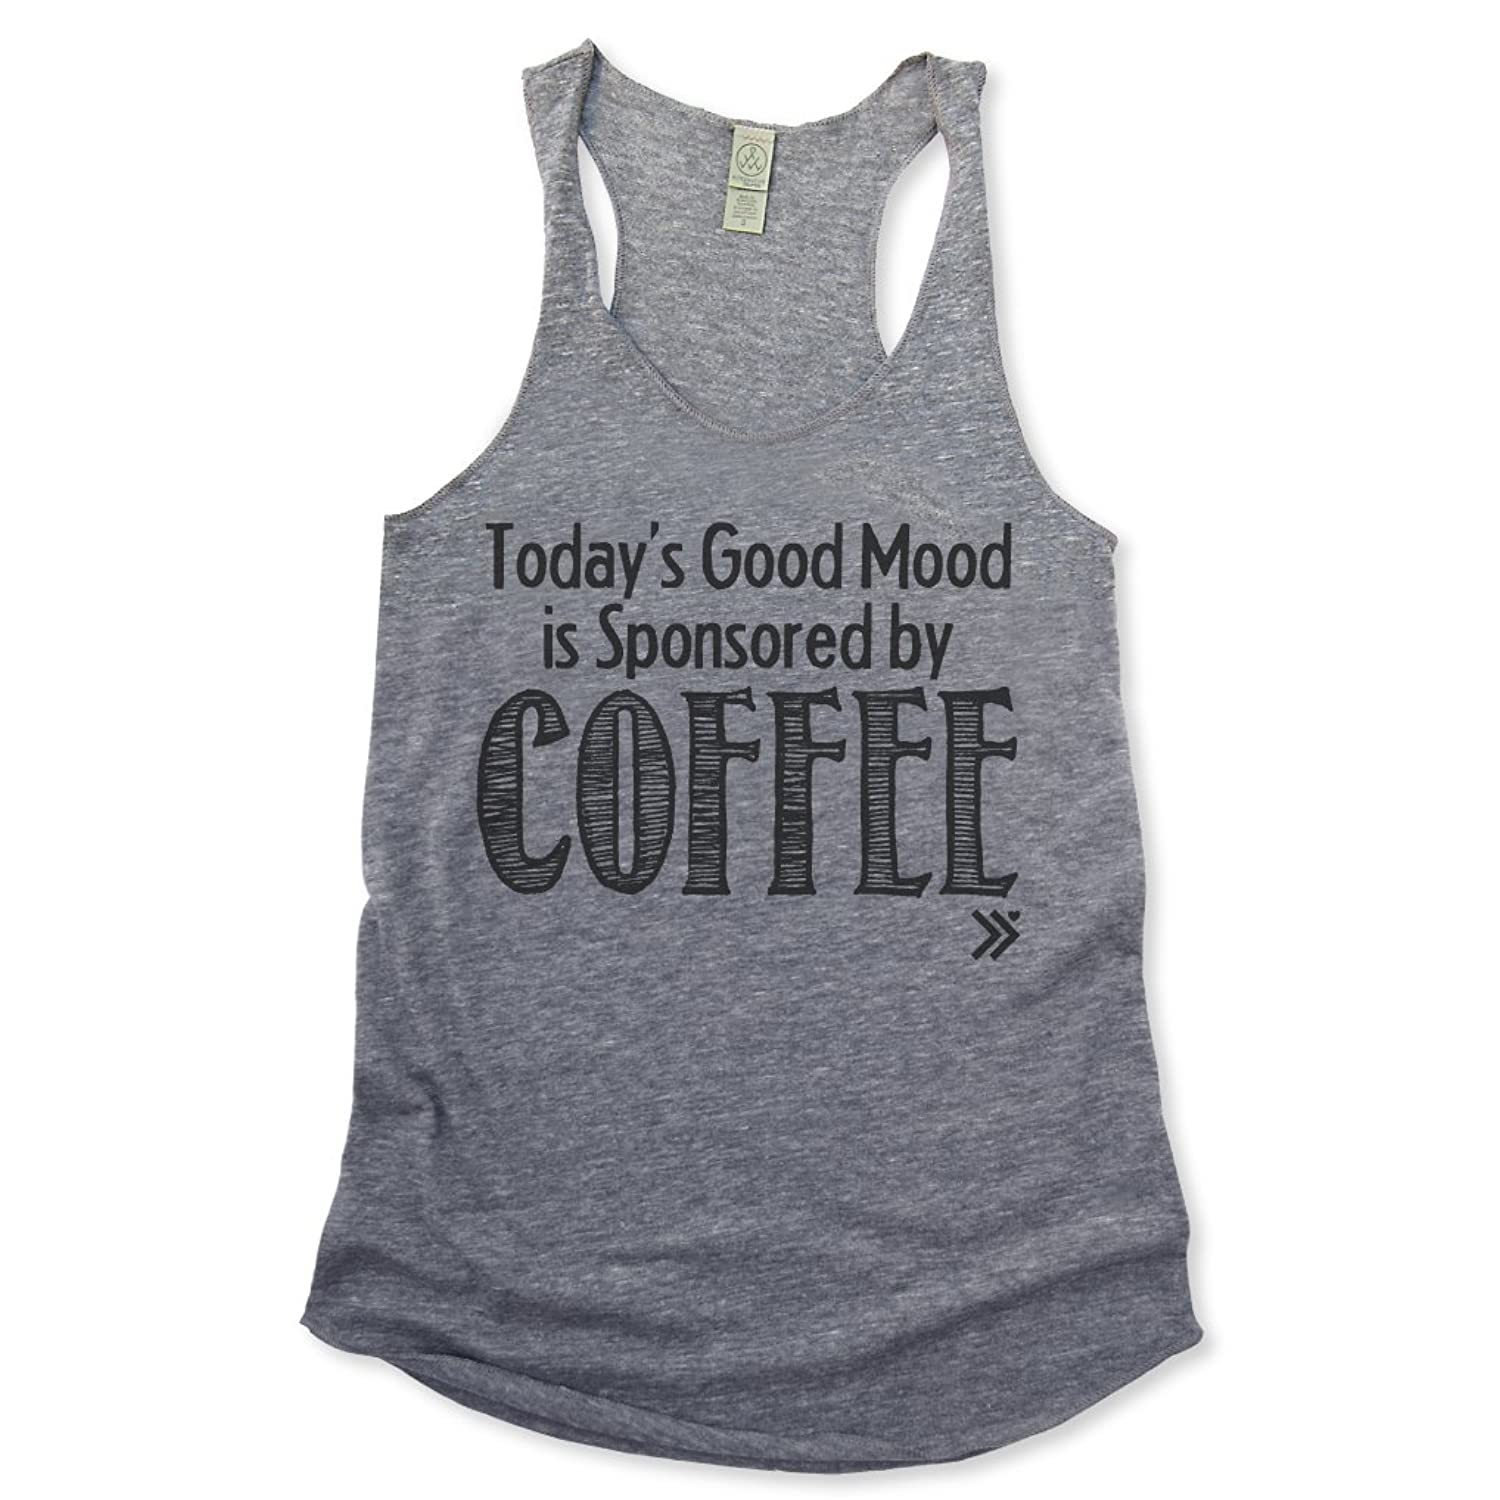 Everfitte Today's Good Mood Sponsored By Coffee Eco-tank x